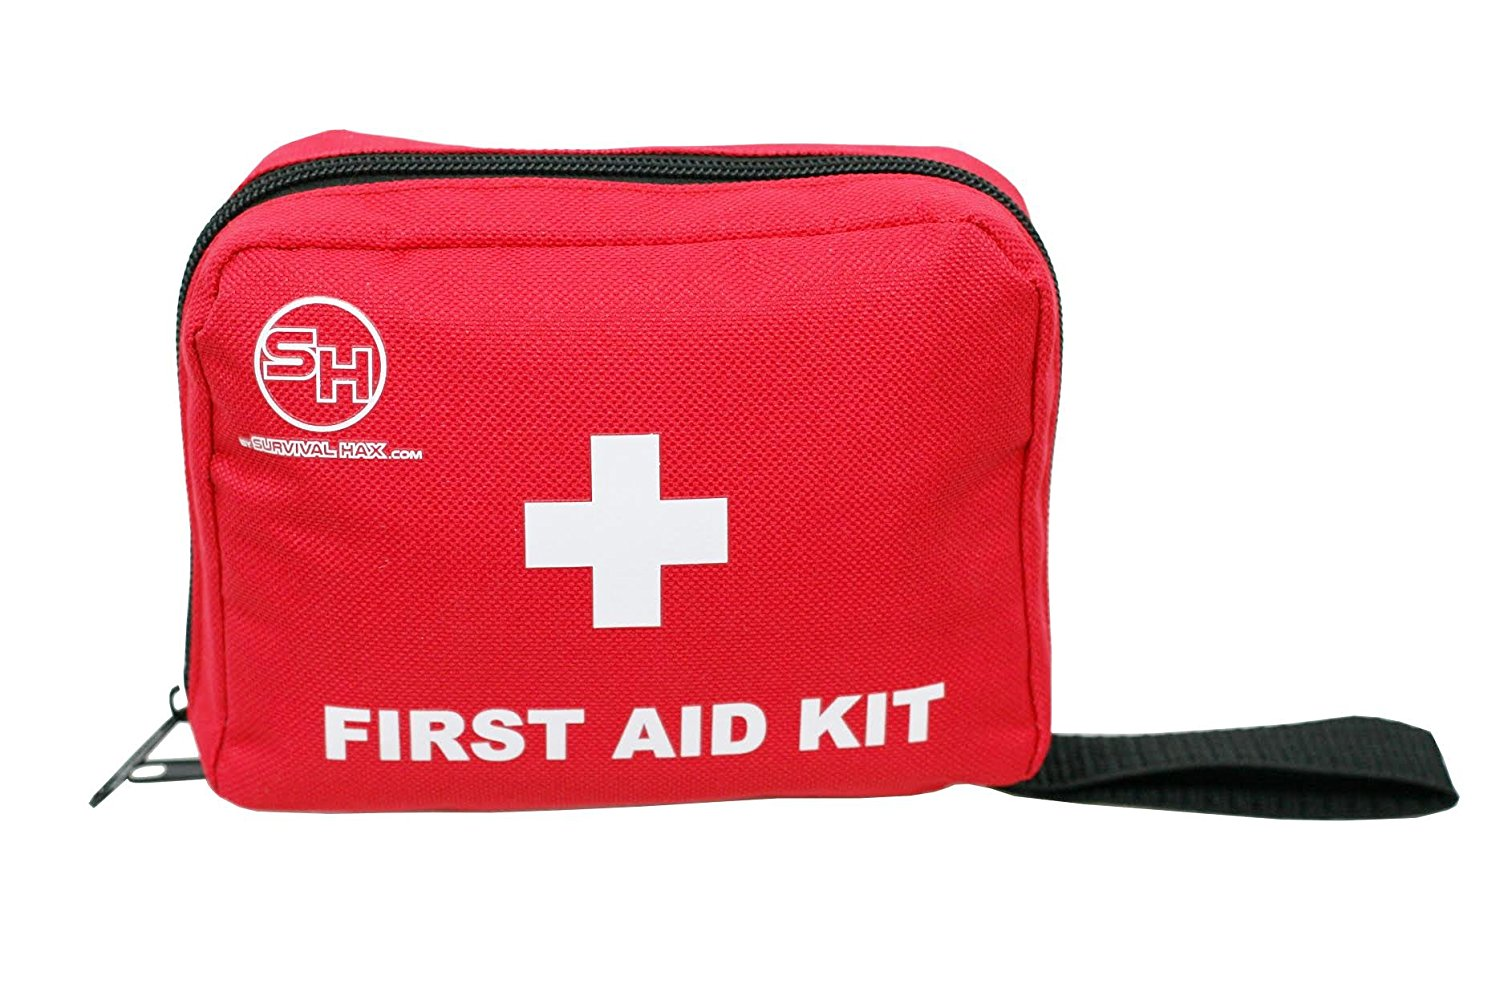 Don't forget to take a first aid kit with you when traveling with your puppy